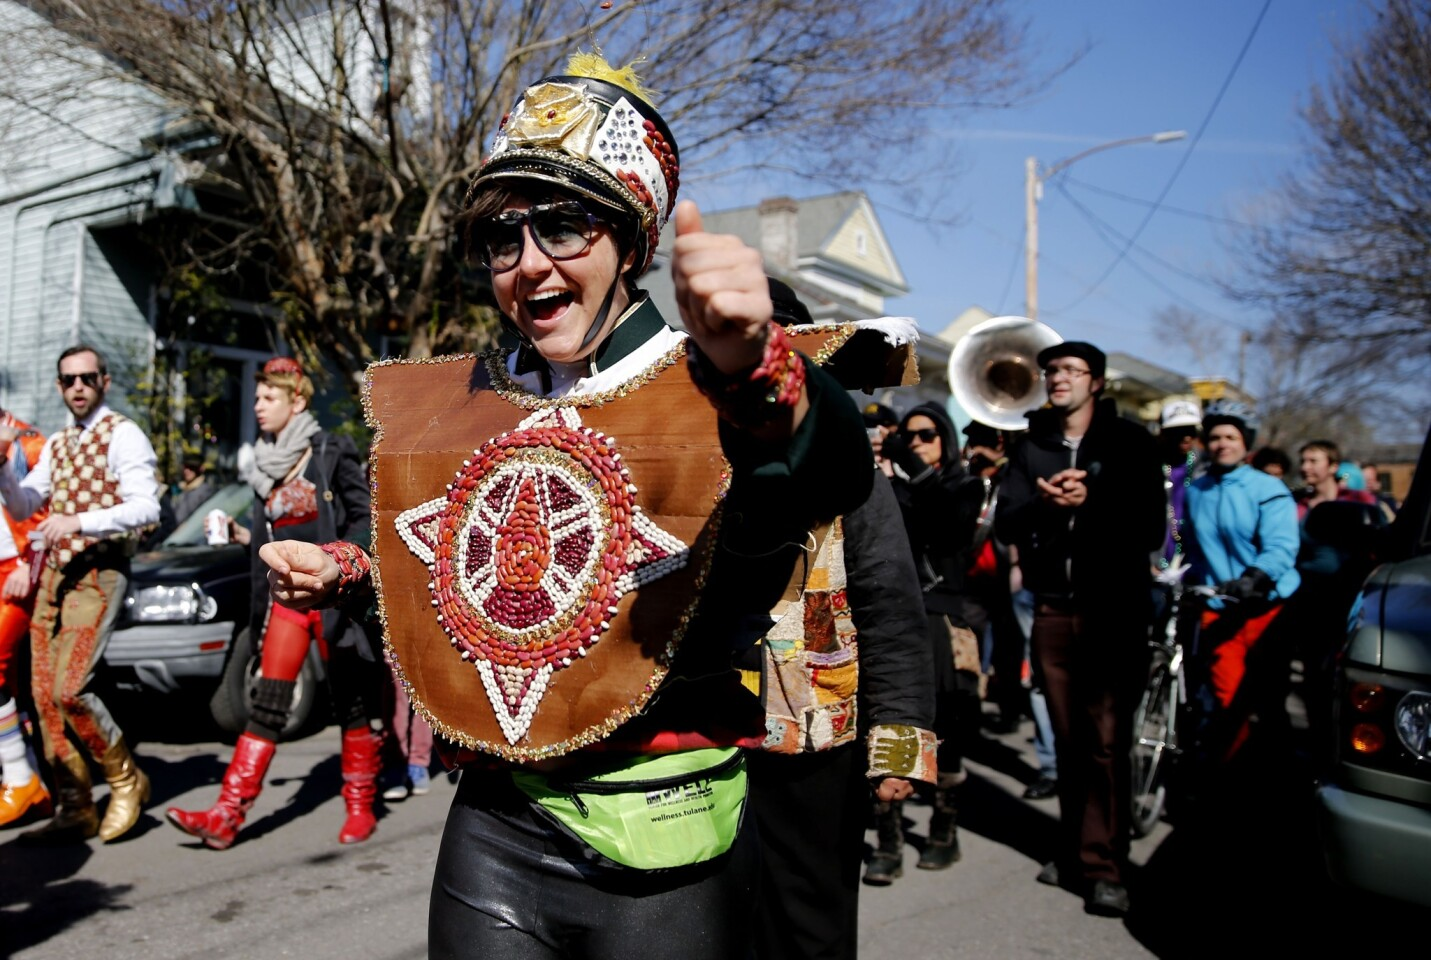 The Red Beans parade began in the Marigny neighborhood and ended in the Treme with the Treme Brass Band on Monday in New Orleans. Participants sported costumes made of various kinds of beans.